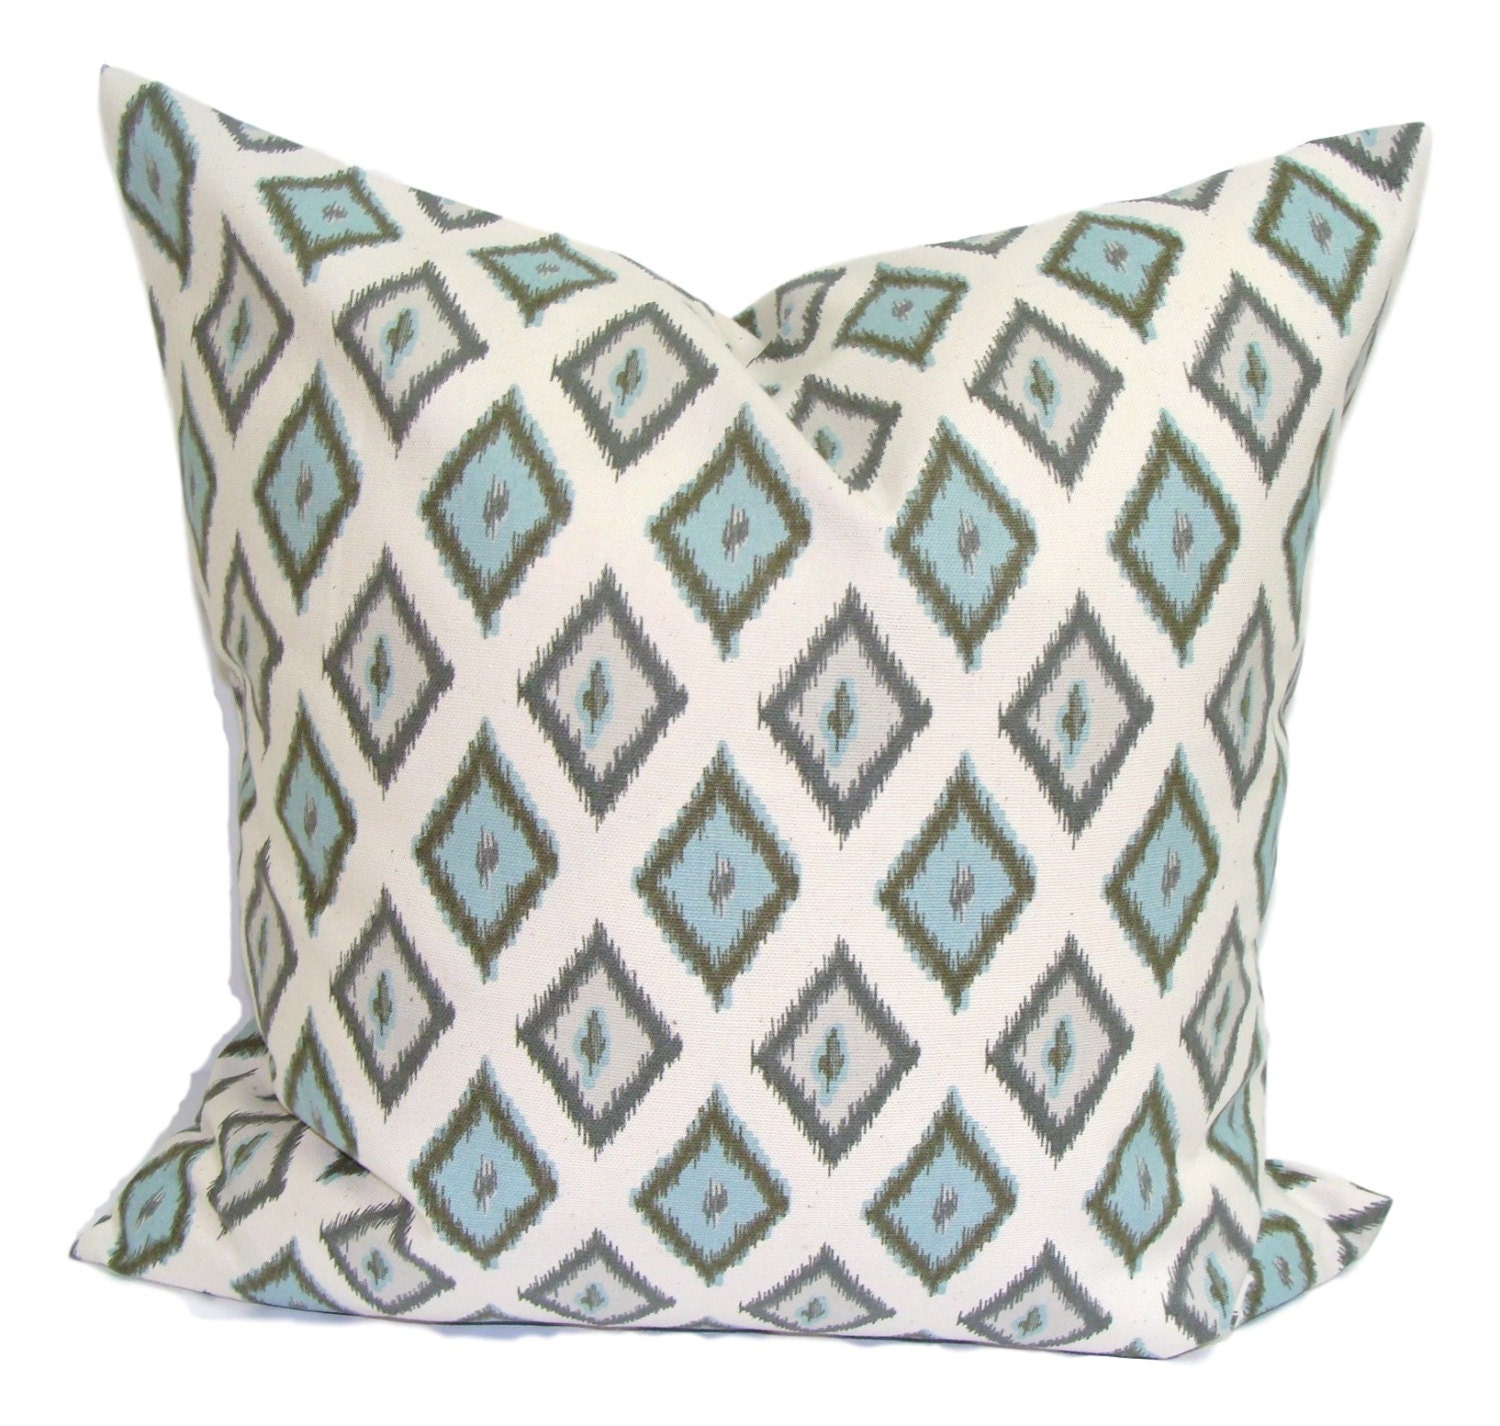 Decorative Pillows Blue : Decorative Pillows Blue Blue Pillow Cover Home Decor Blue